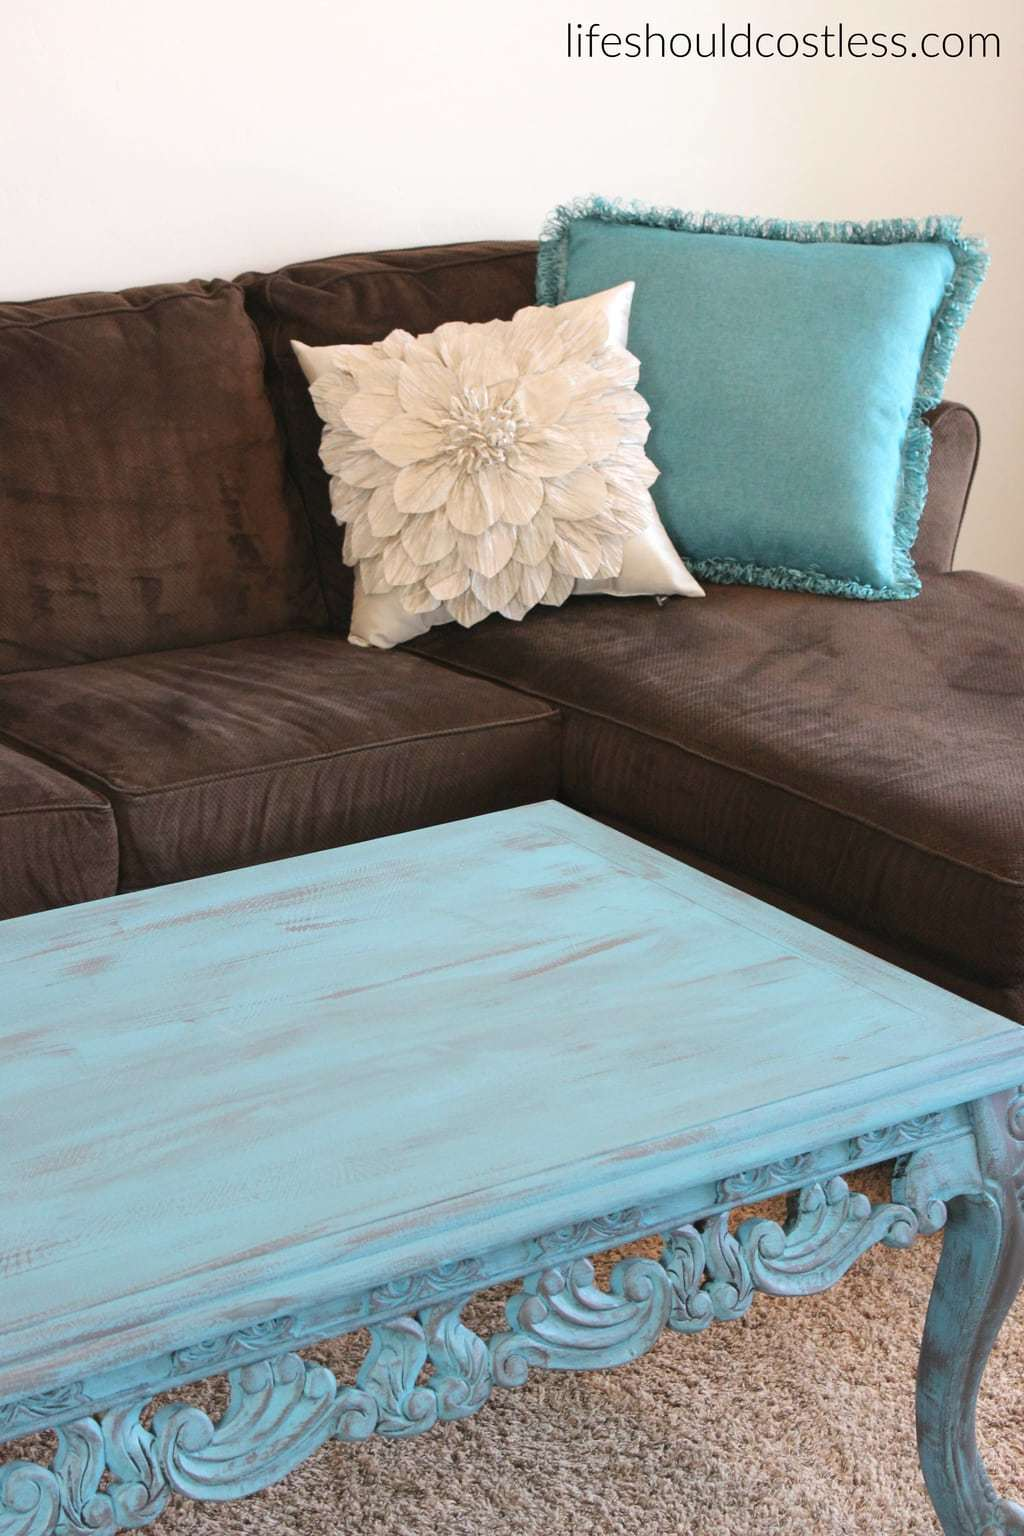 Turquoise Coffee Table Make-Over In Americana Decor Treasure. With new decorative pillows.